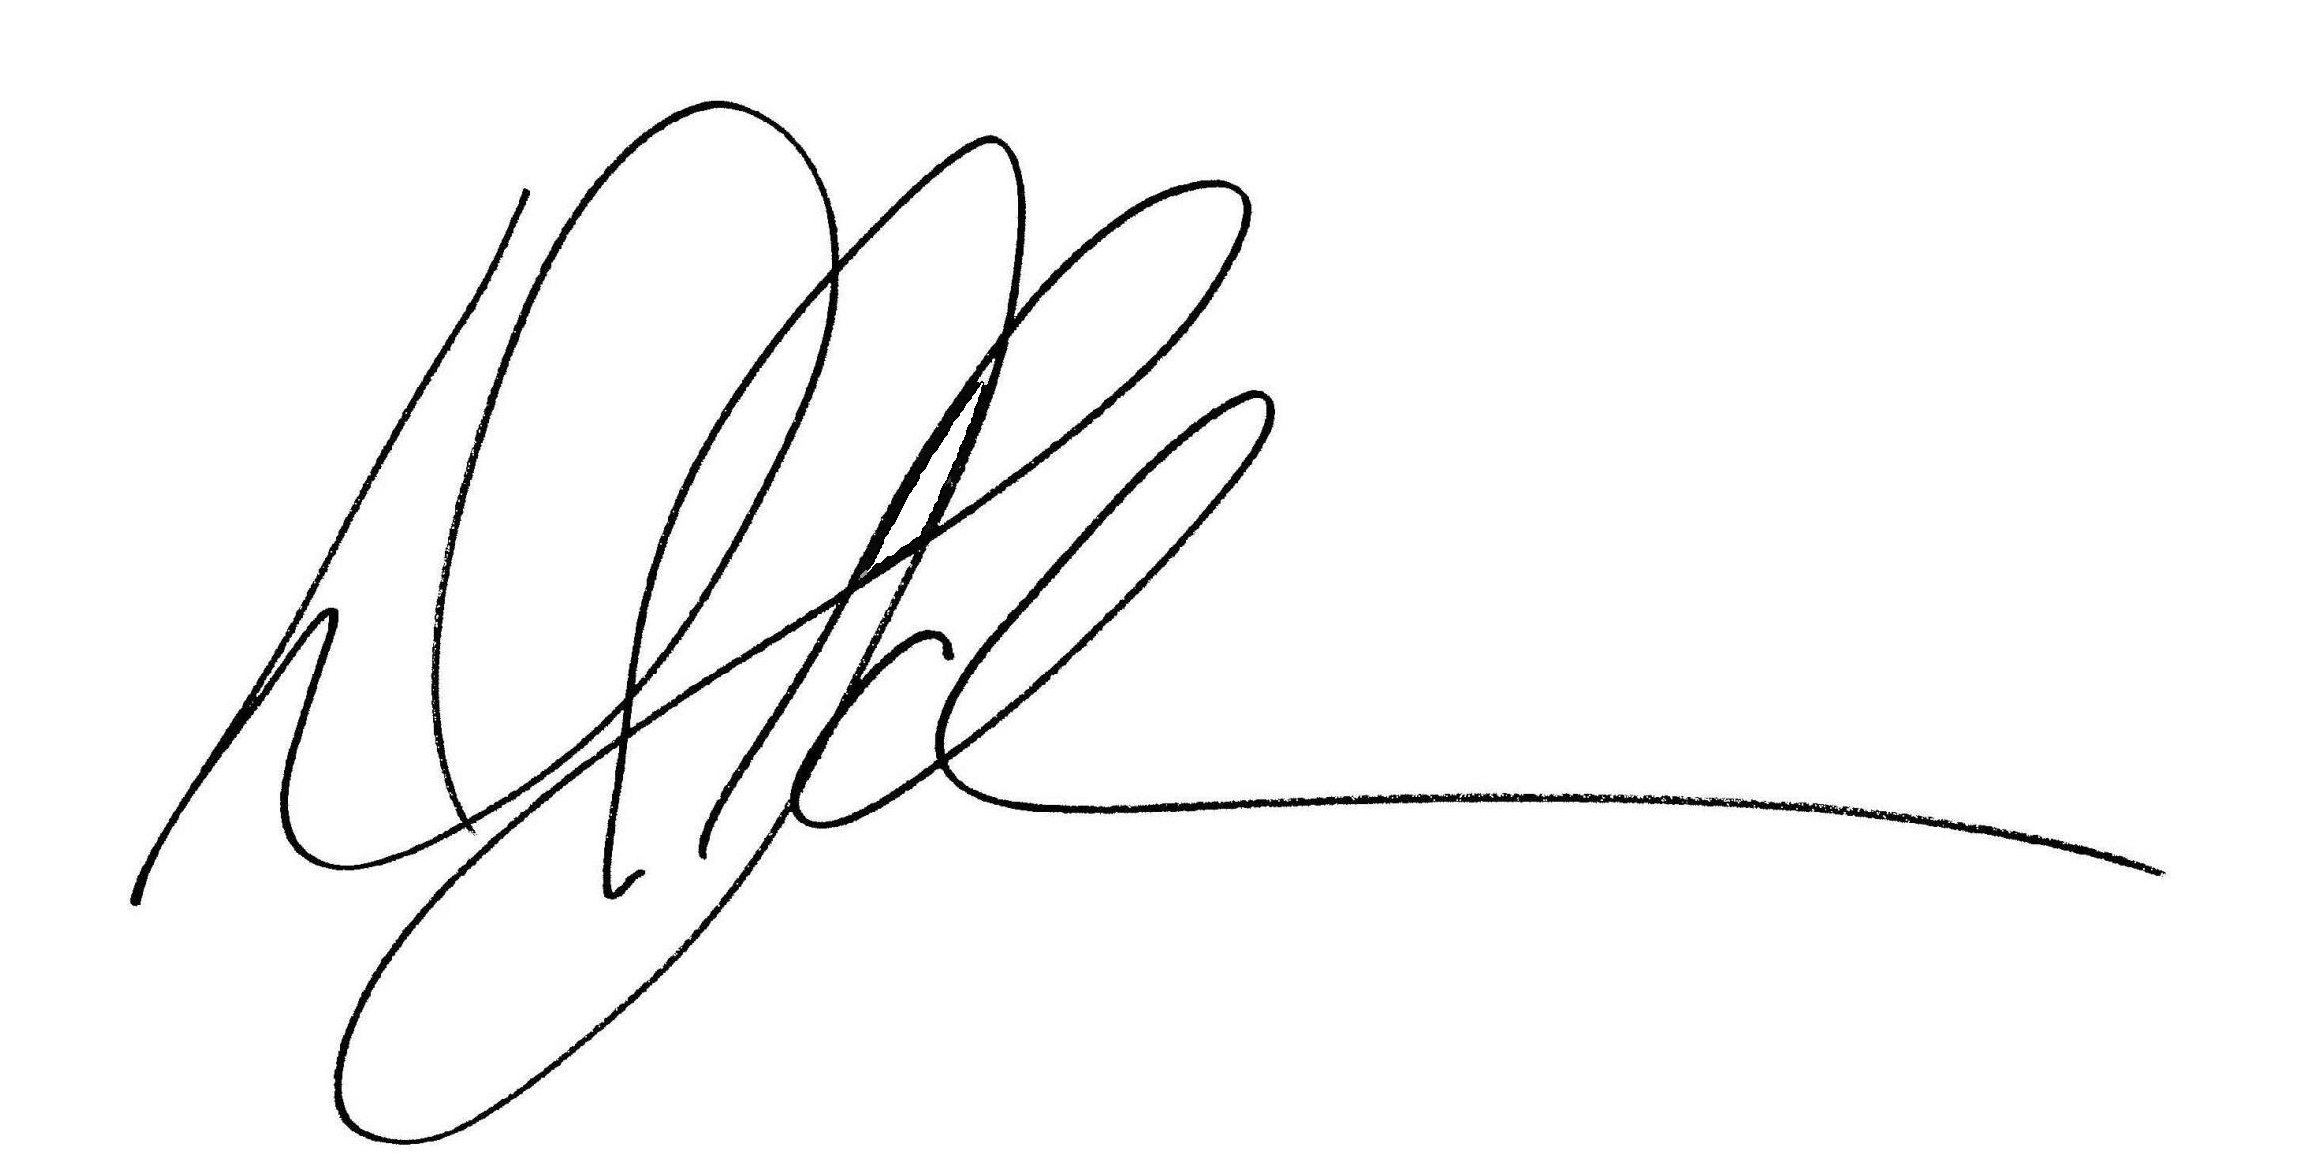 David Schmerer's Signature